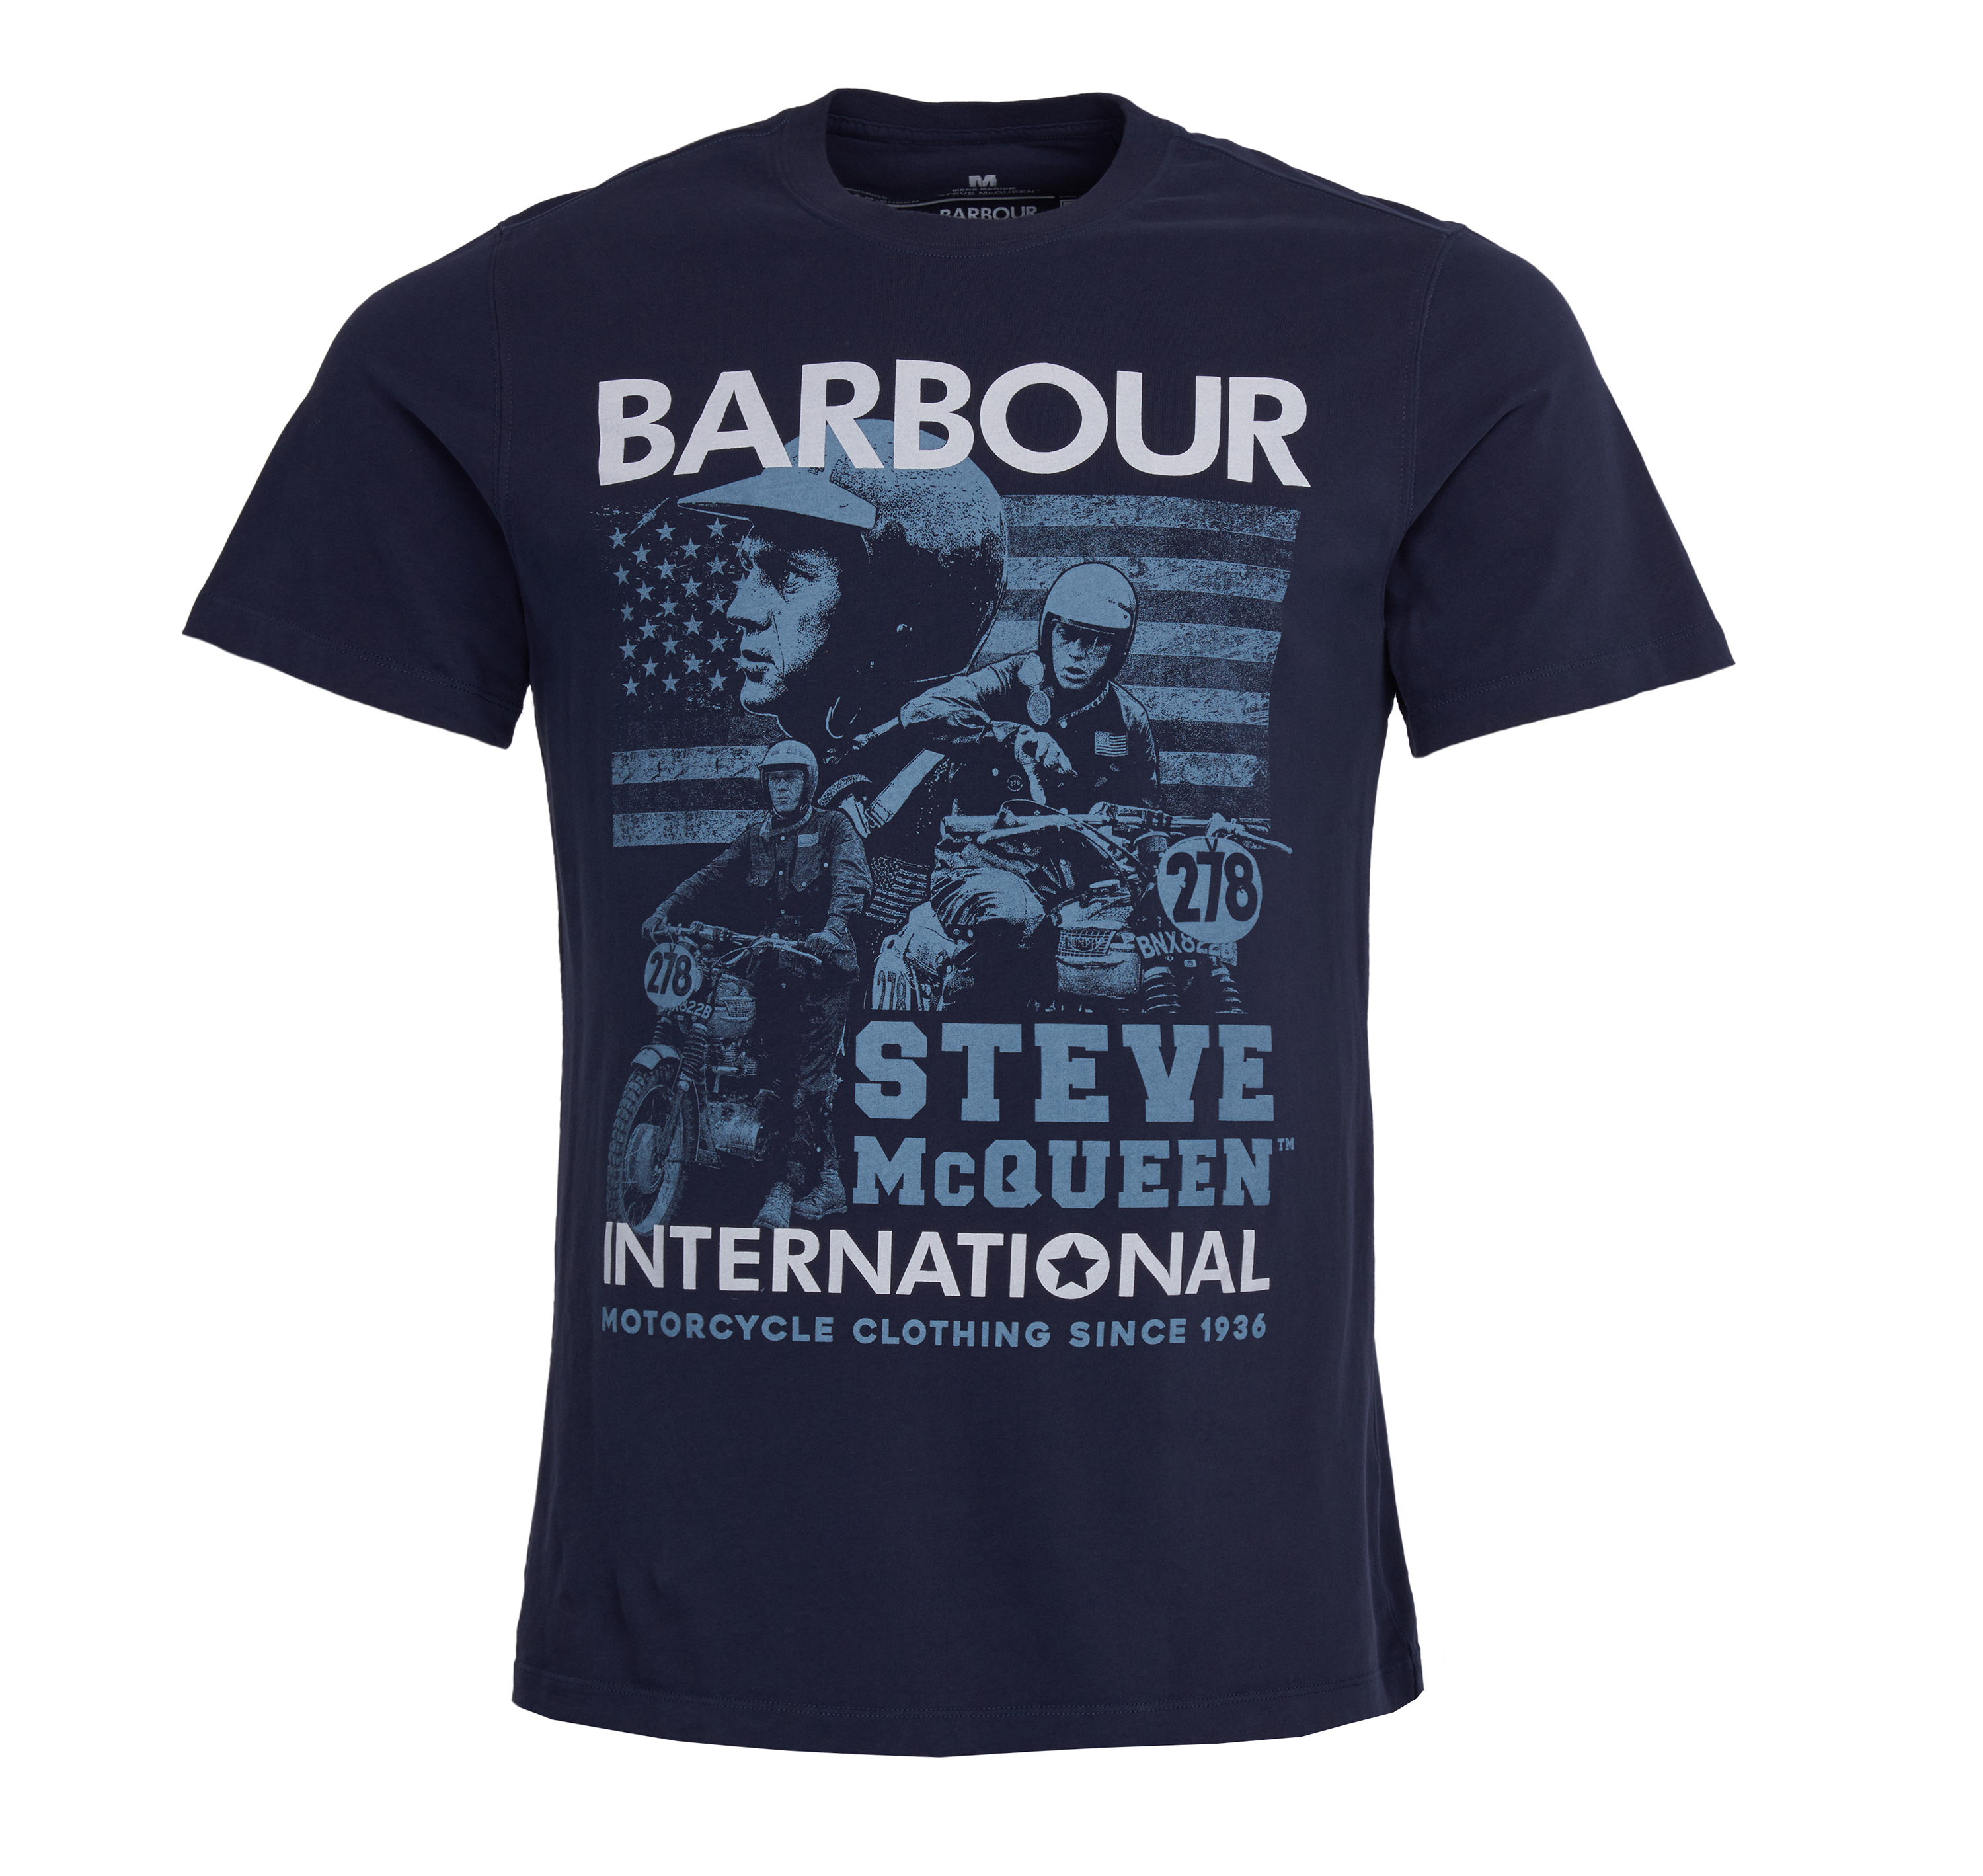 Barbour Collage T-Shirt Barbour International From Steve McQueen Collection